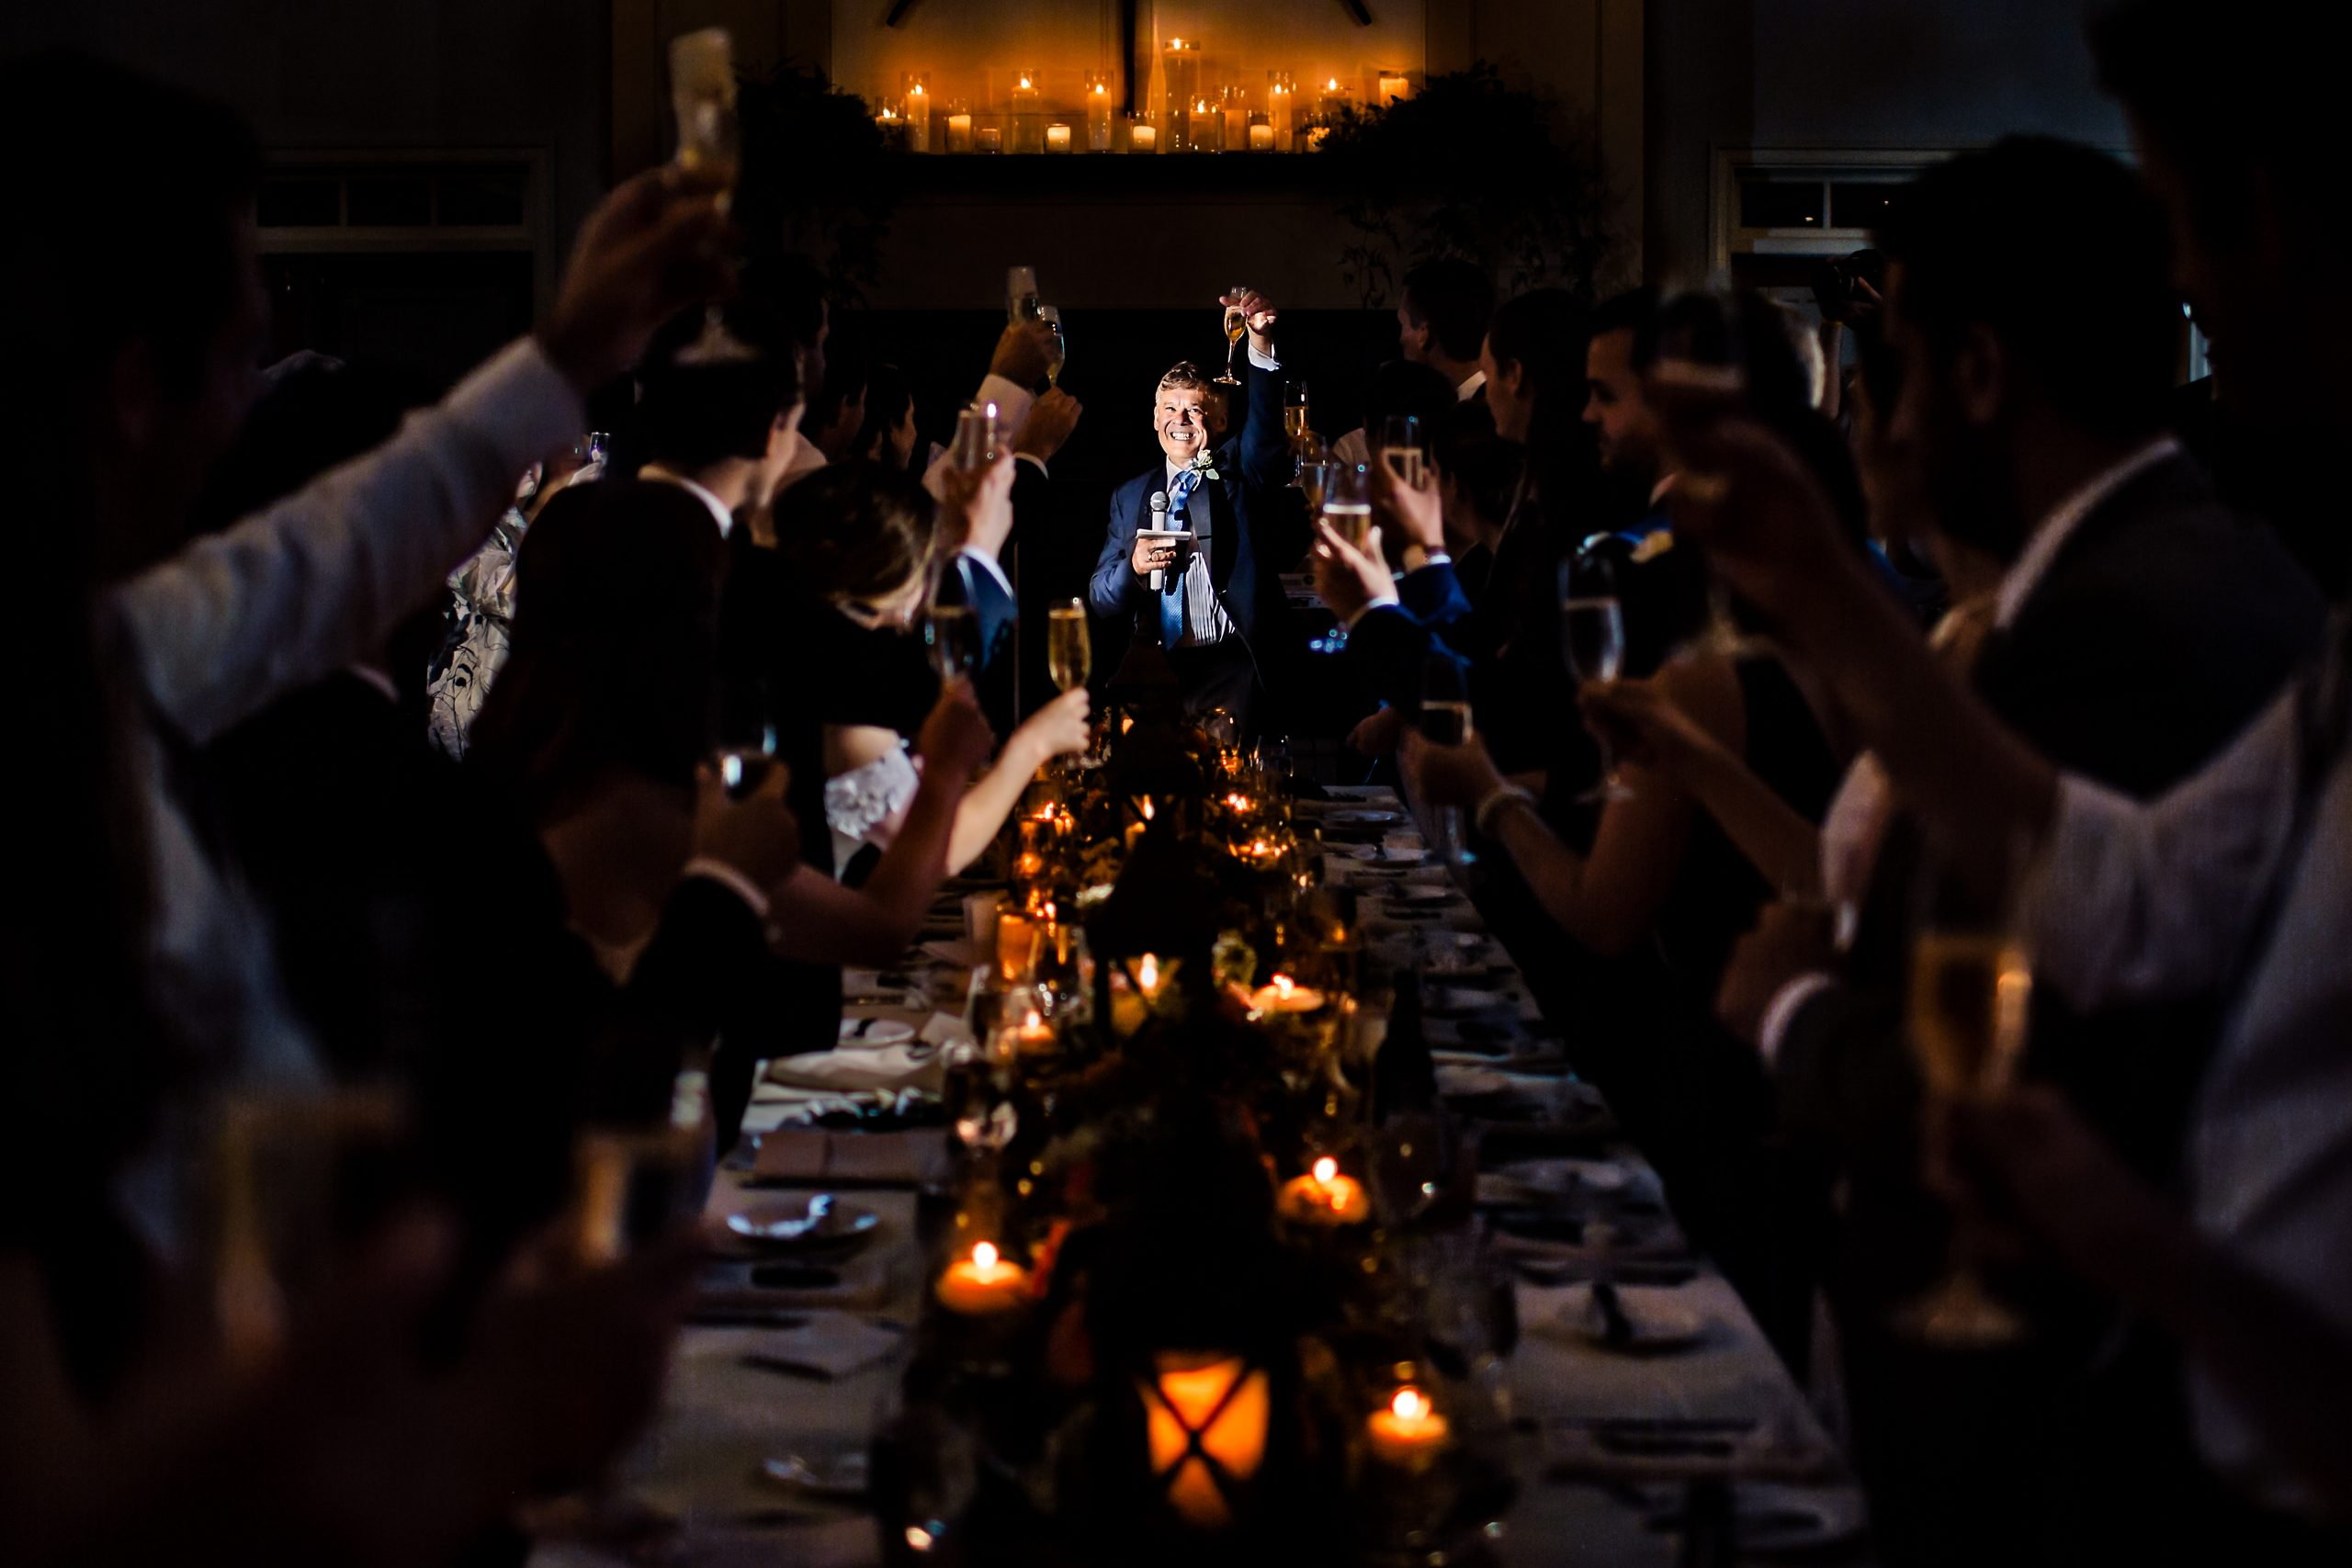 The bride's father raises a glass at the wedding banquet